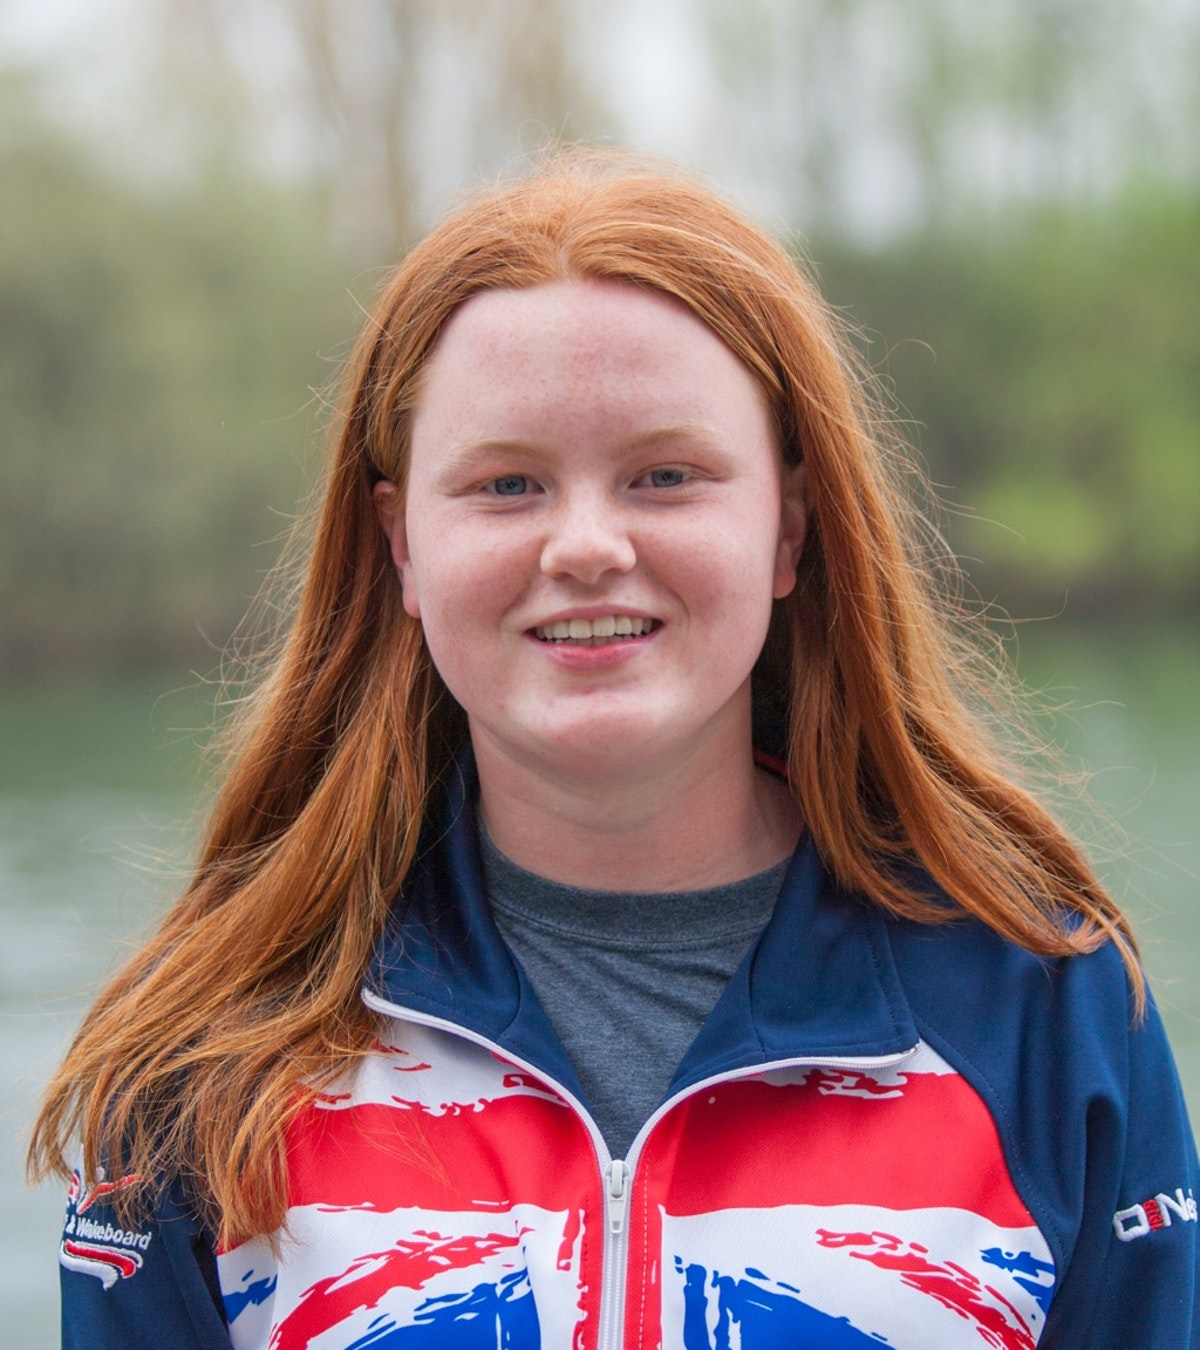 Emily Reid at the 2020 British Wakeboard Squad